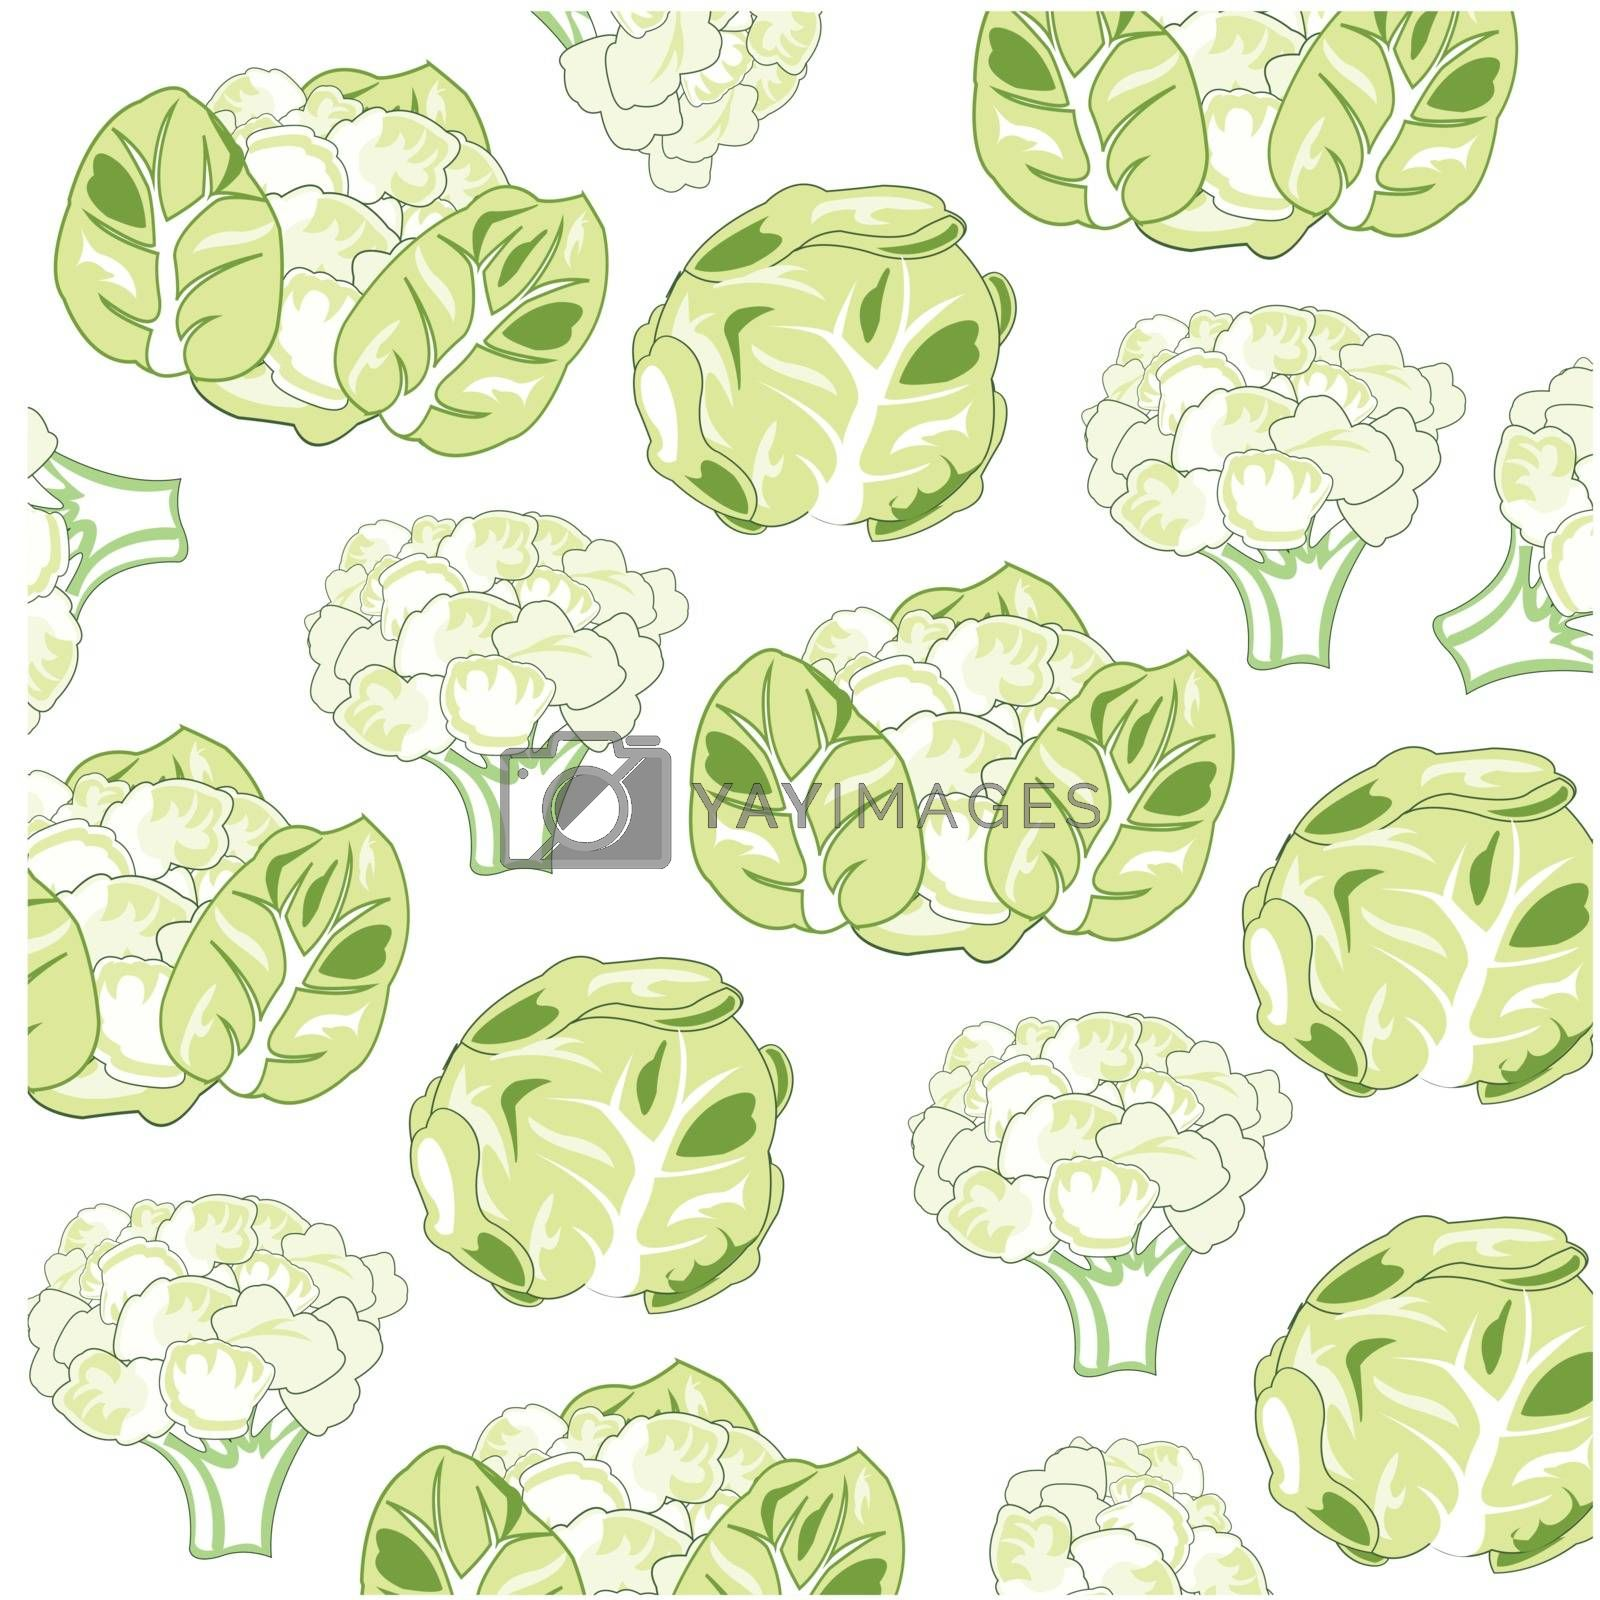 Sort of the cabbage pattern on white background is insulated